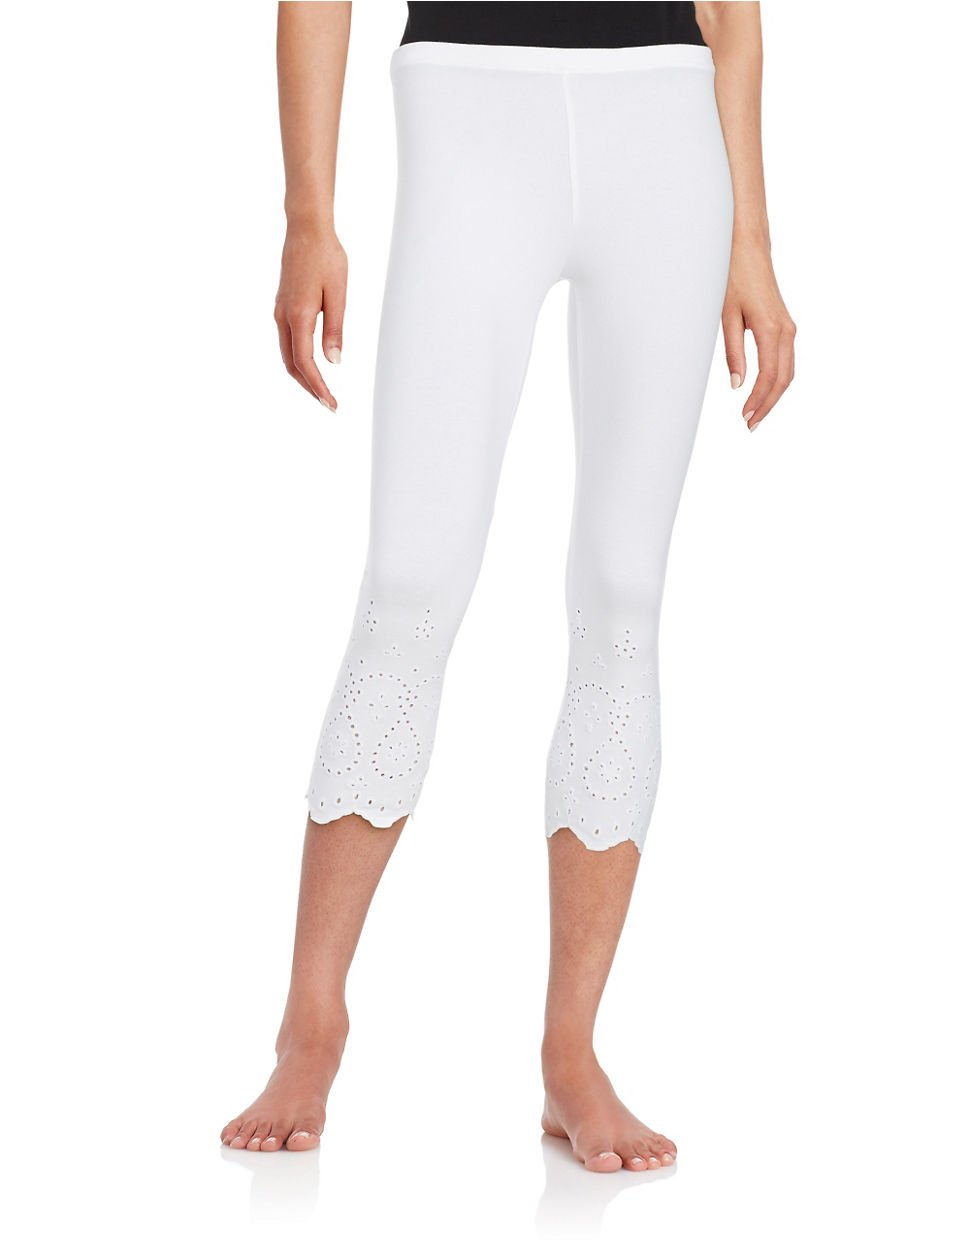 Hue Eyelet-trim Capri Leggings in White | Lyst